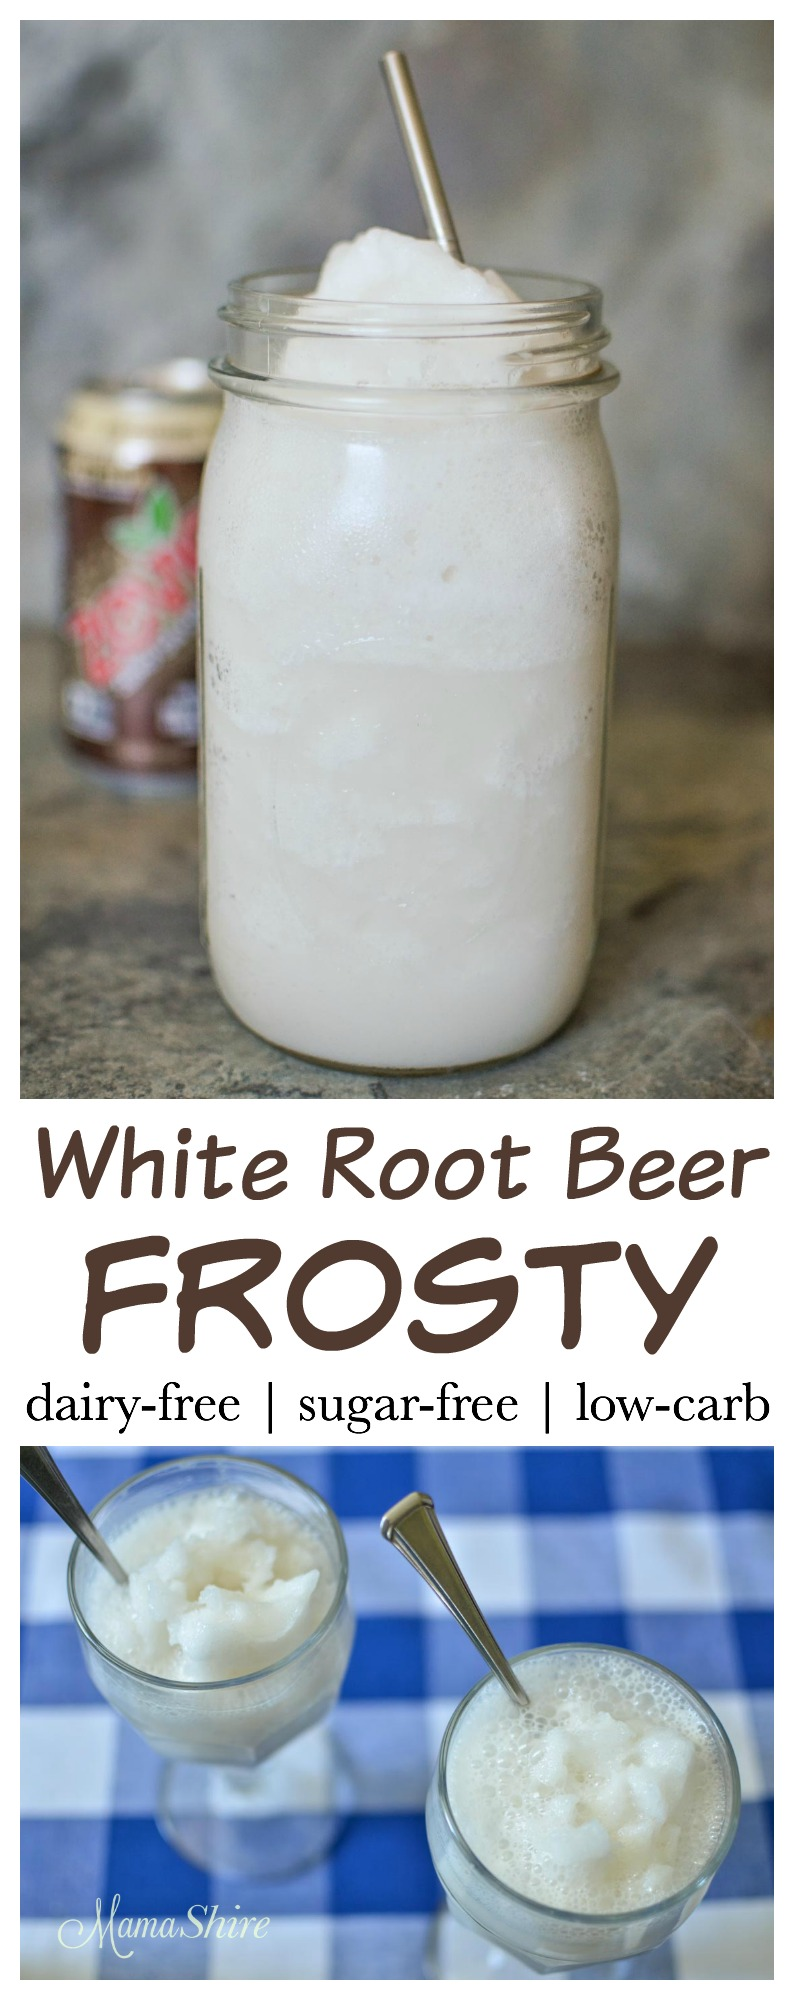 White Root Beer Frosty - Dairy-free, Sugar-free